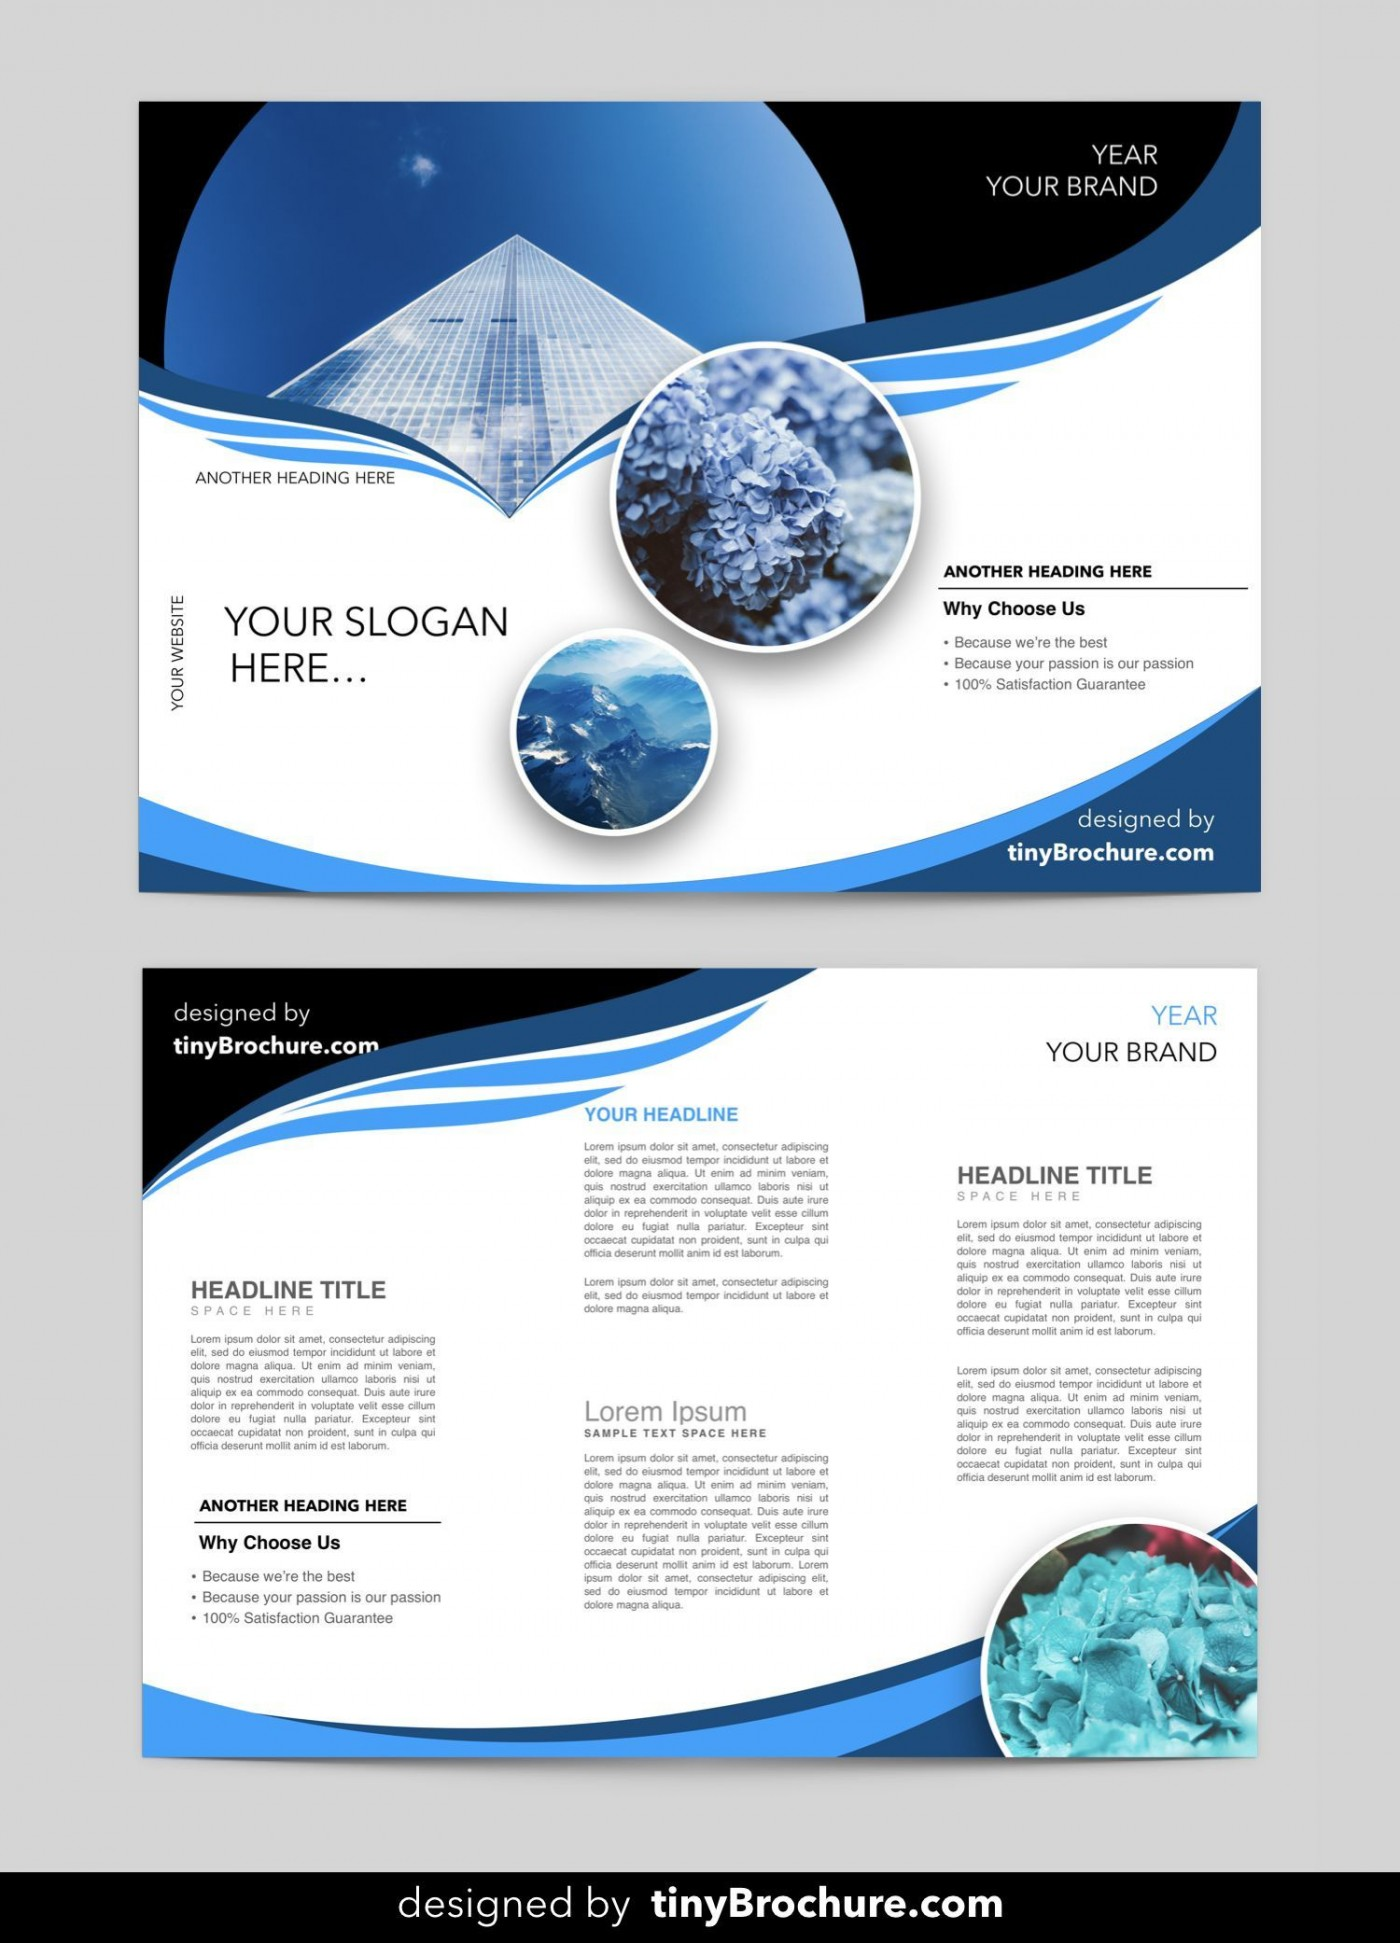 003 Wonderful Download Brochure Template For Word 2007 High Definition 1400